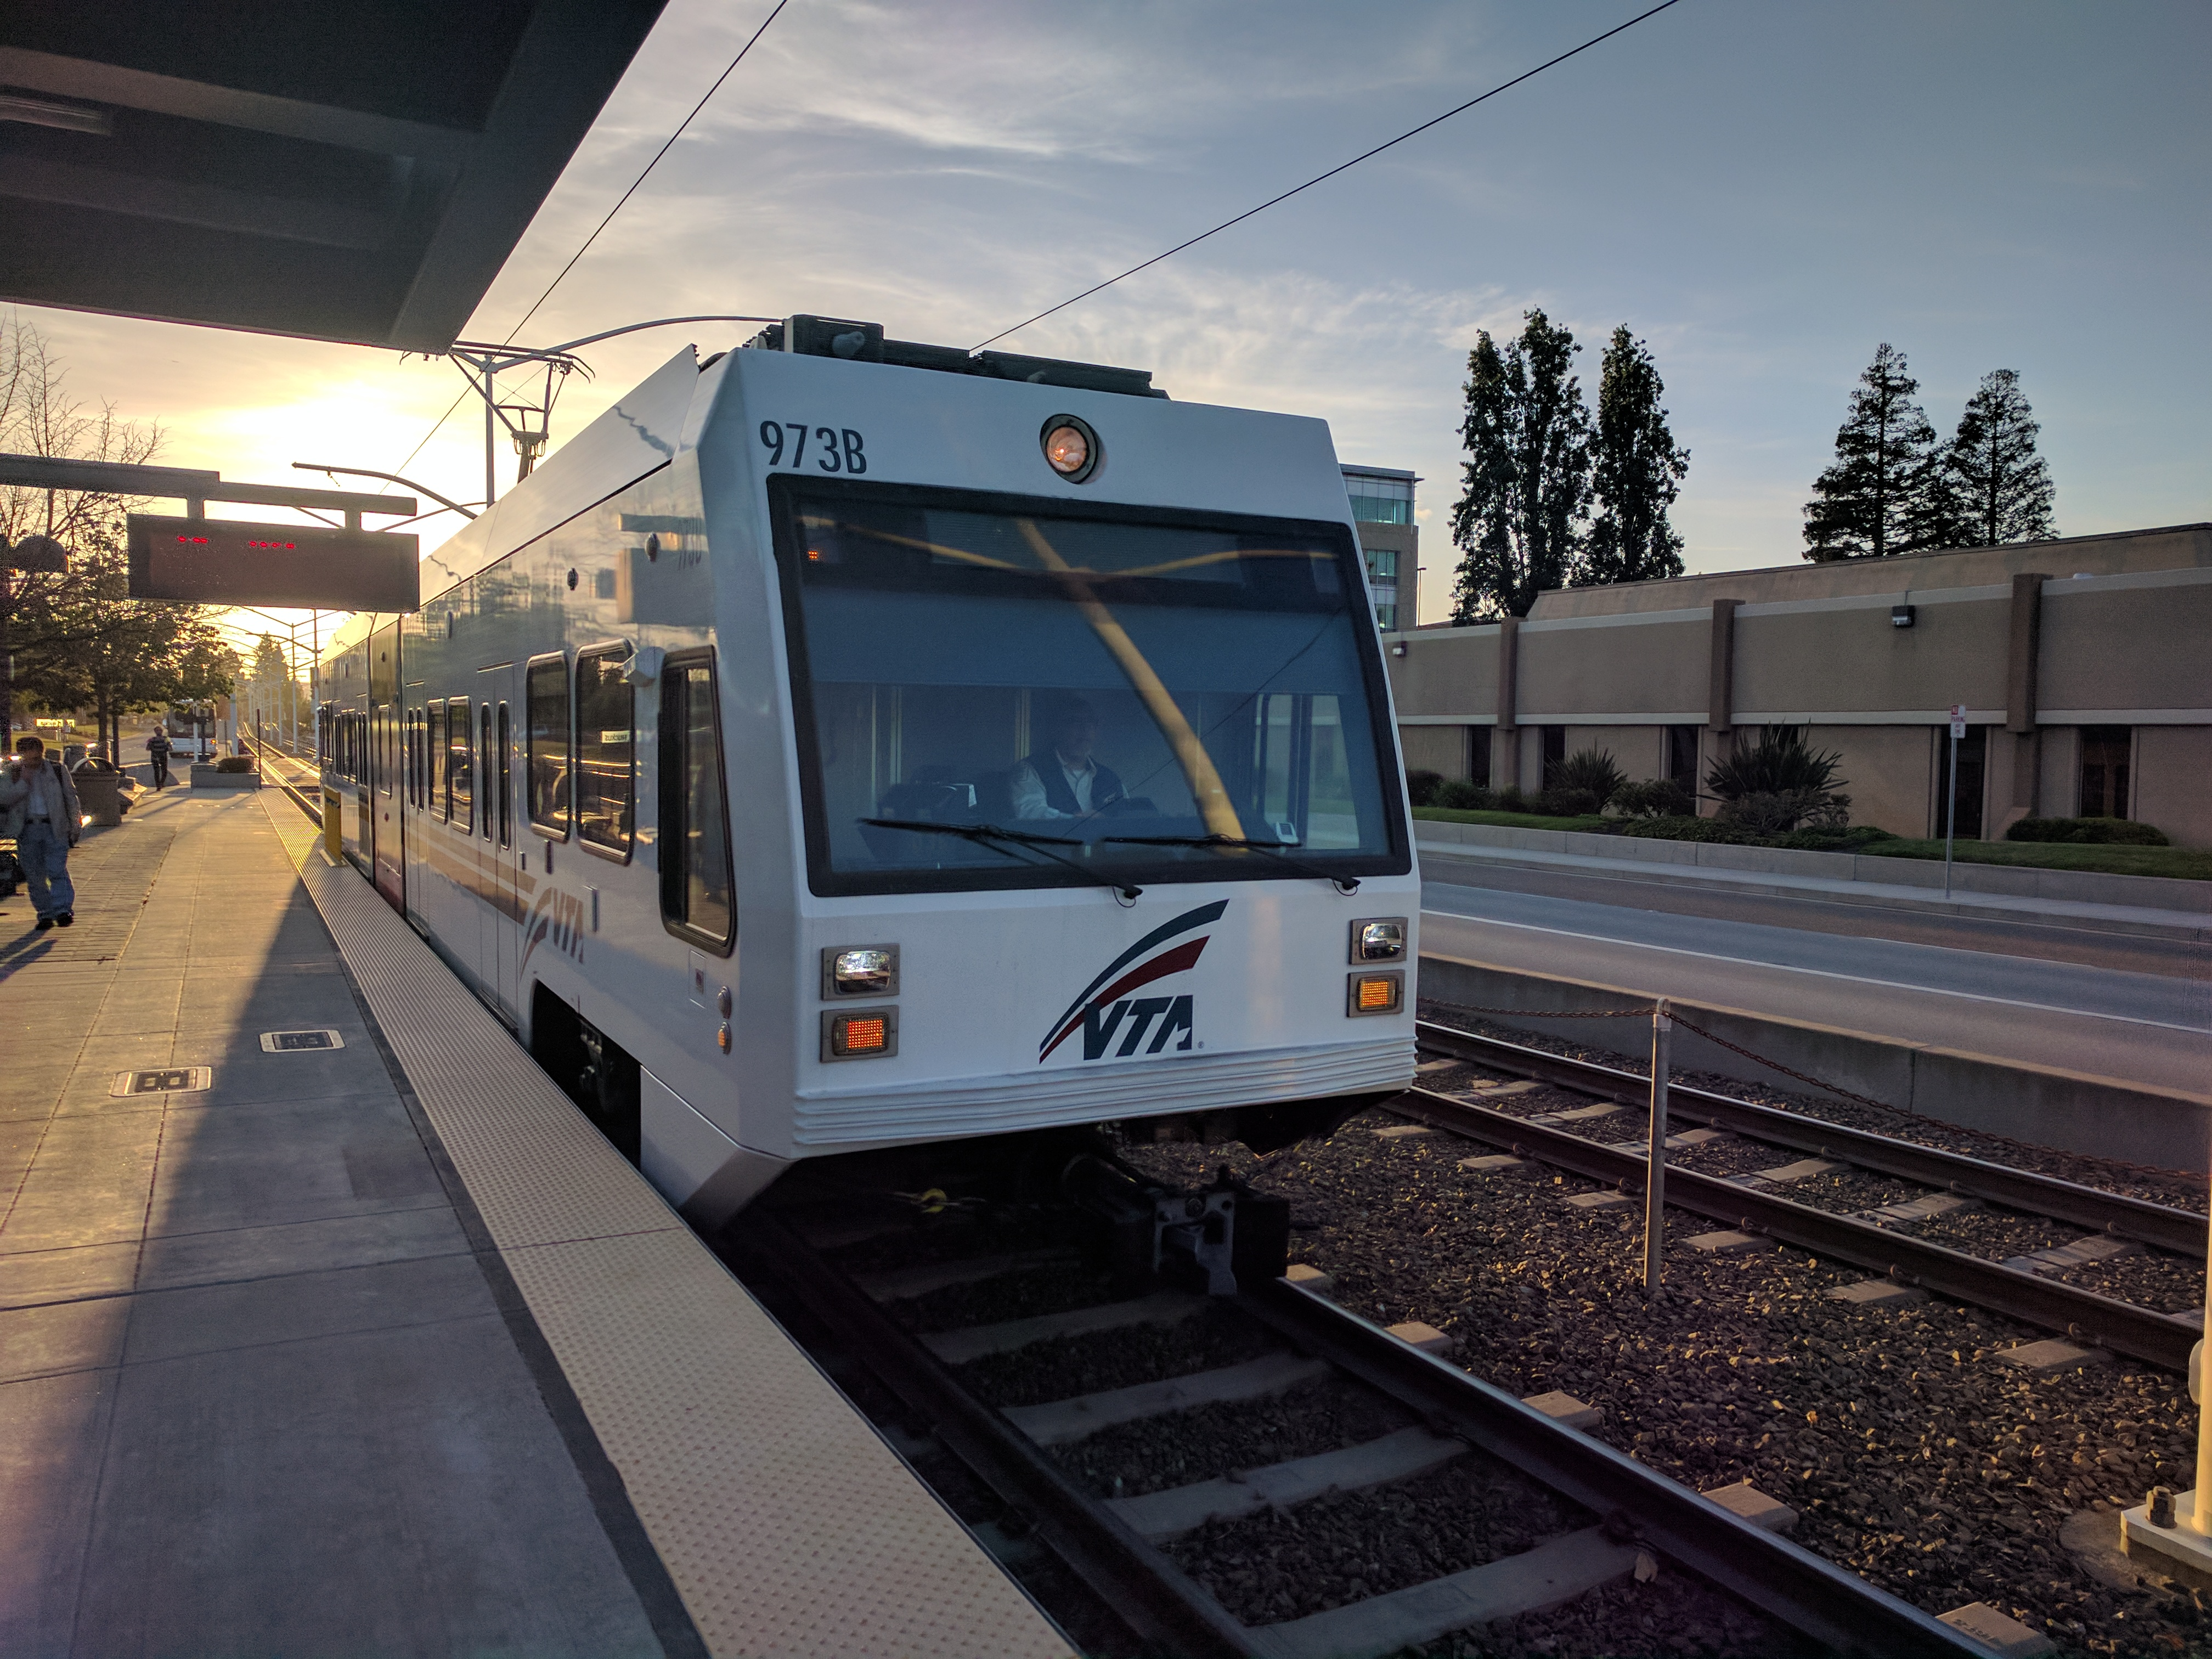 Exceptional File:VTA Light Rail Pulling Into Borregas Station At Sunset Photo Gallery